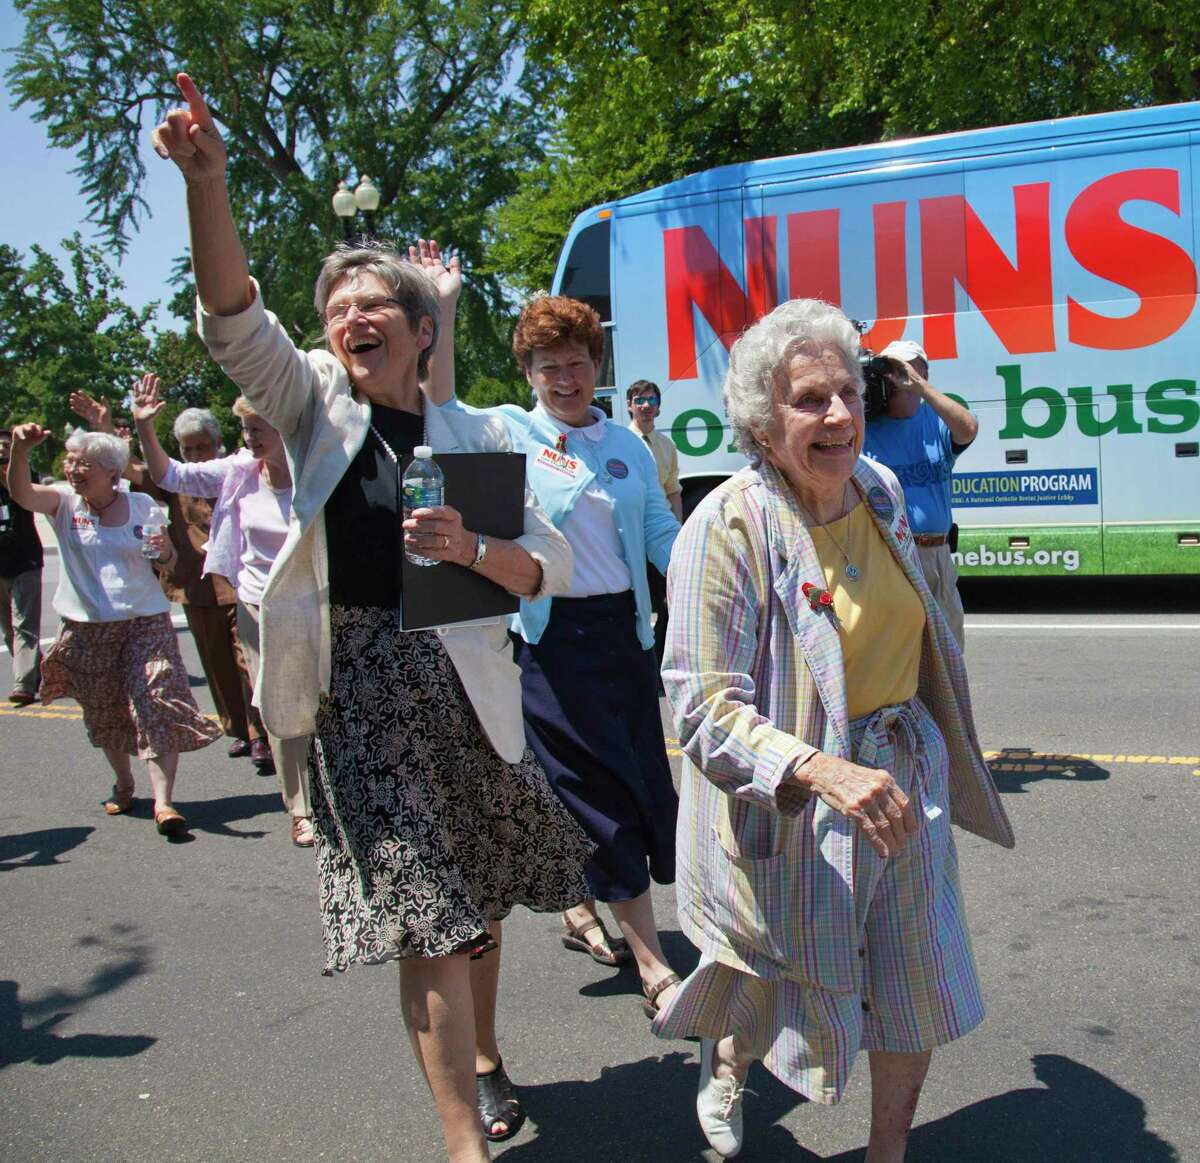 """Sister Diane Donoghue, right, and Sister Simone Campbell, left, lead the way as the the """"Nuns on the Bus"""" arrive on Capitol Hill in Washington, Monday, July 2, 2012, after a nine-state tour to bring stories of hardship to Congress. Sister Simone Campbell is executive director of Network, a liberal Catholic social justice lobby in Washington. (AP Photo/J. Scott Applewhite)"""